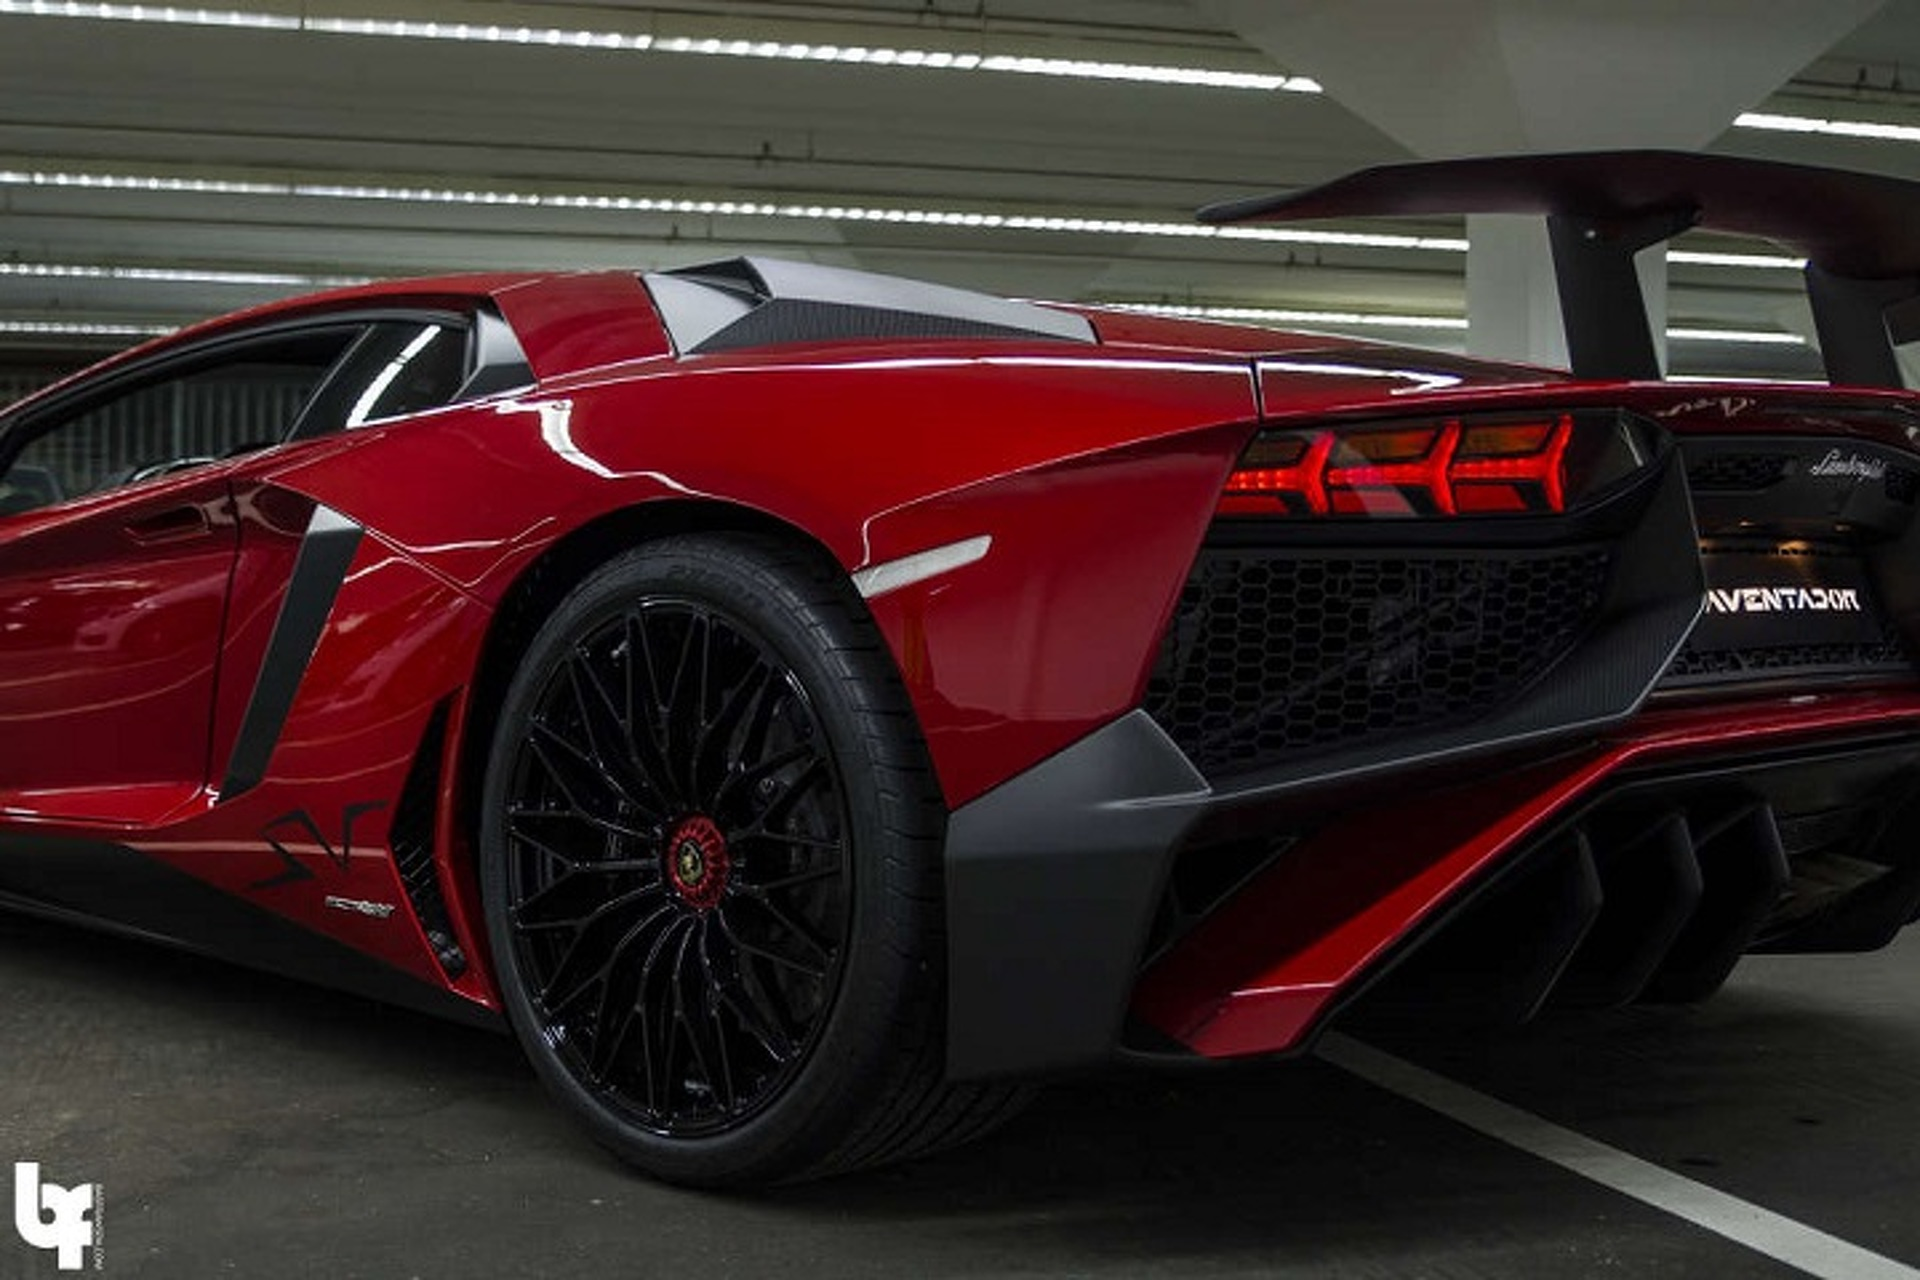 DJ Afrojack and His Blood Red Lamborghini Aventador SV